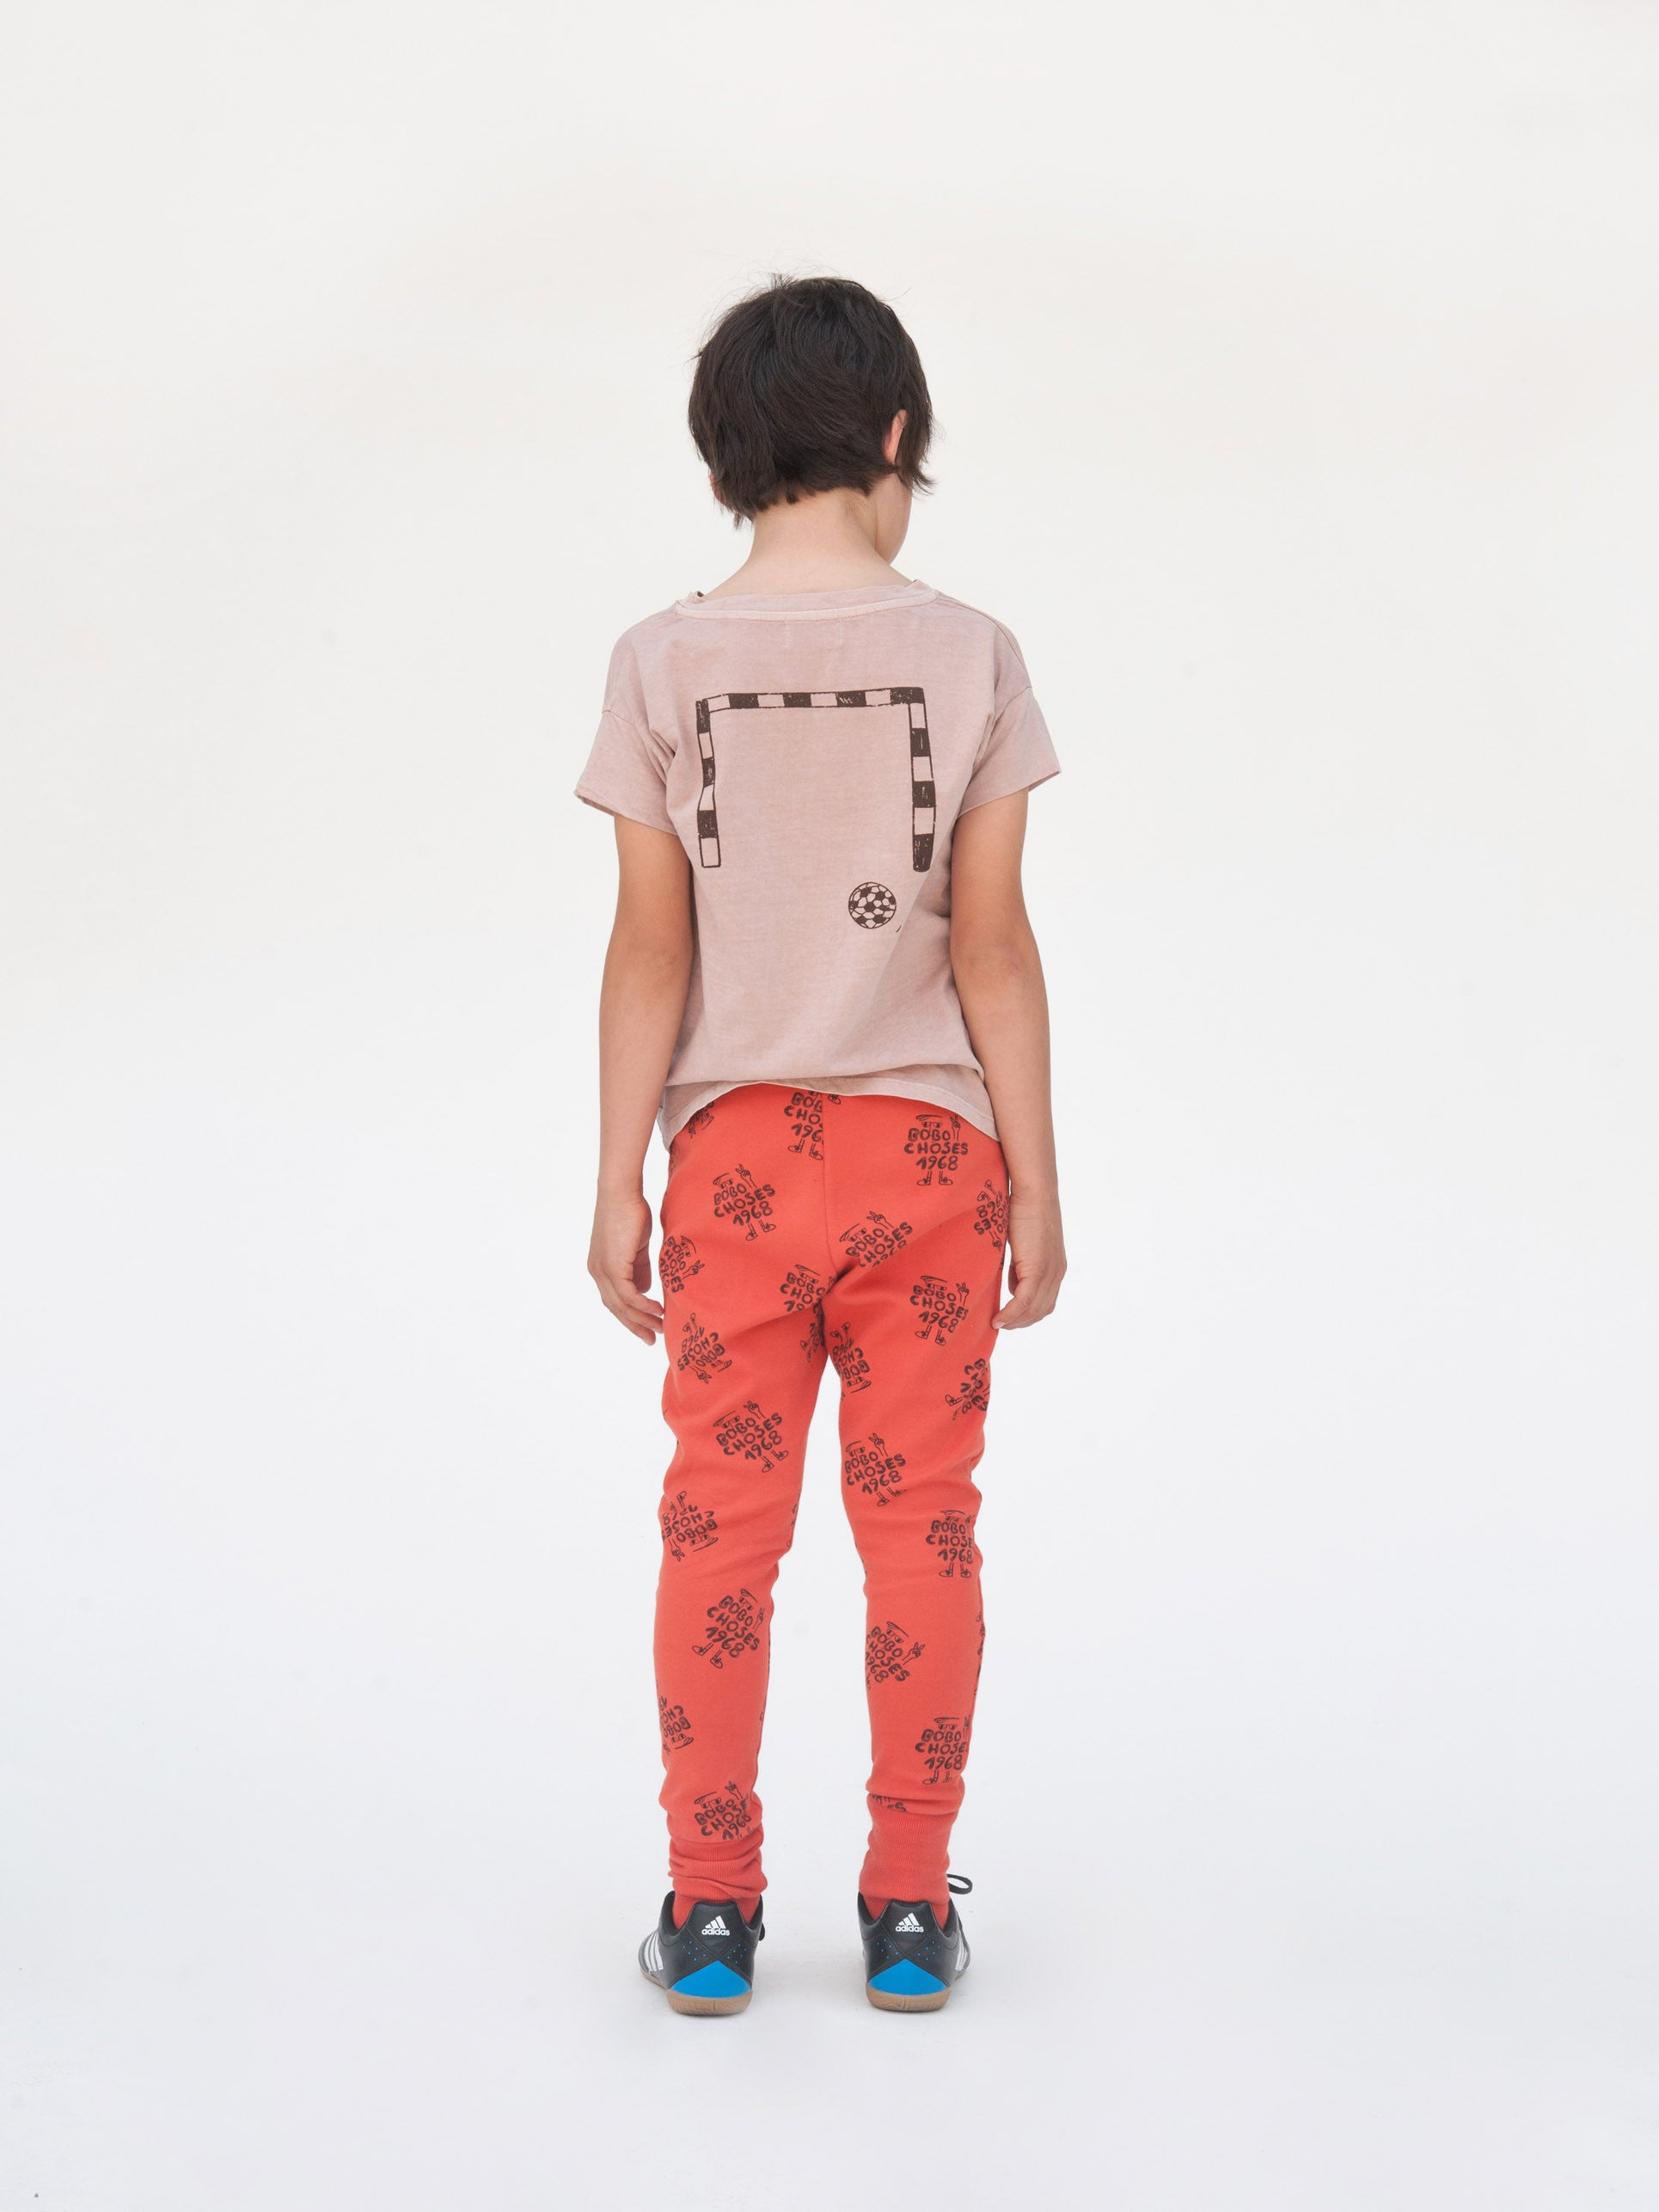 Bobo Choses Football T-shirt - Ladida